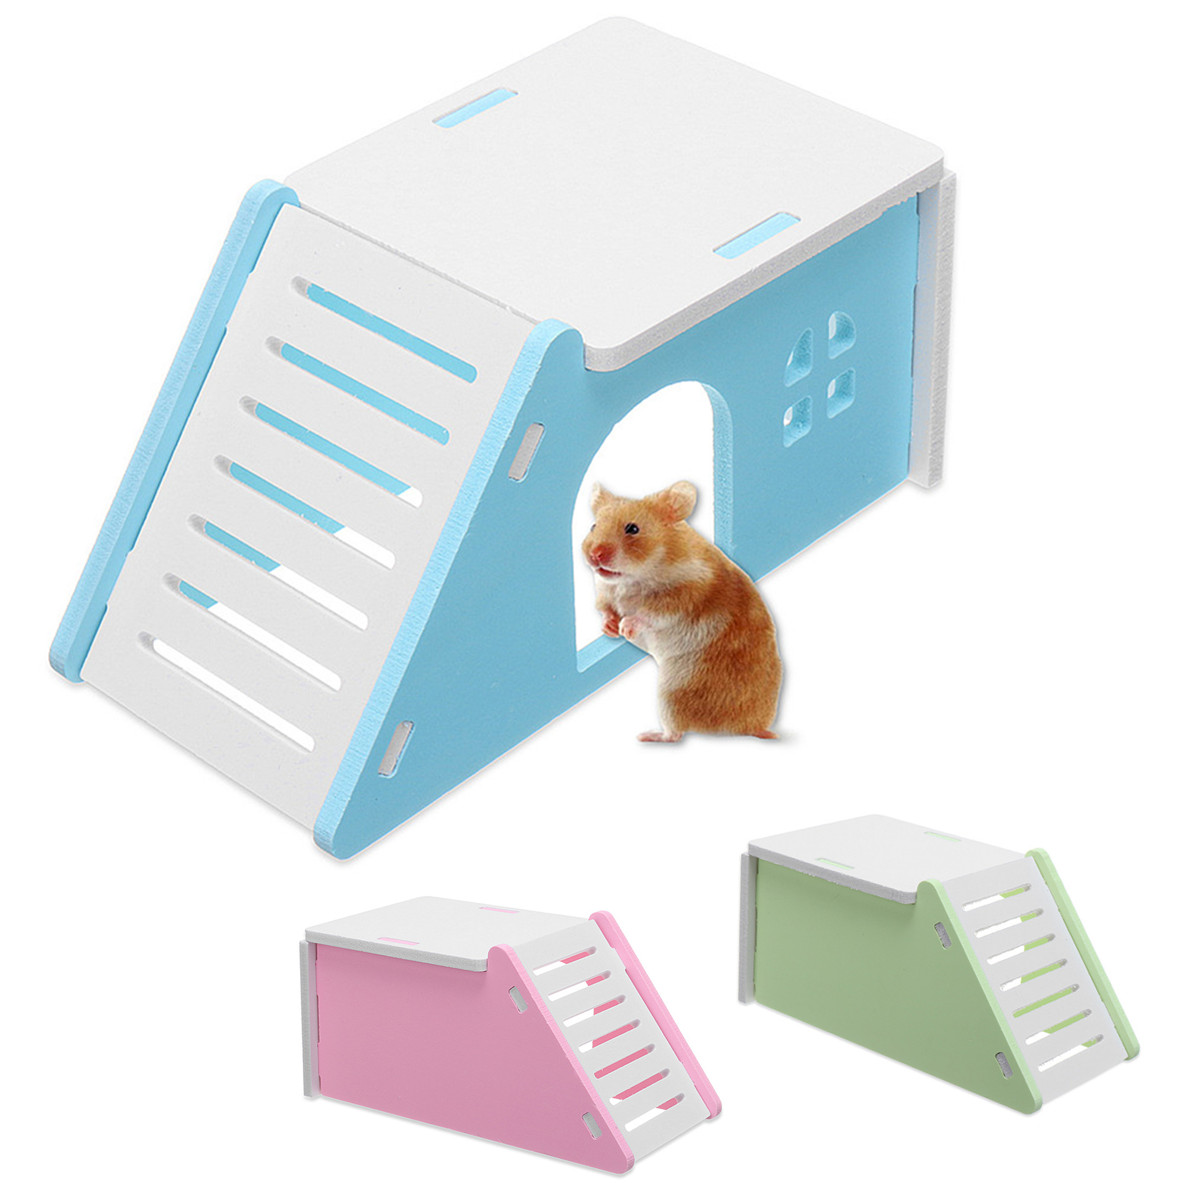 Animal Pet Hamster Nest Mouse Flat House Cage Bed Ladder Playground Exercise Toy Home Outdoor